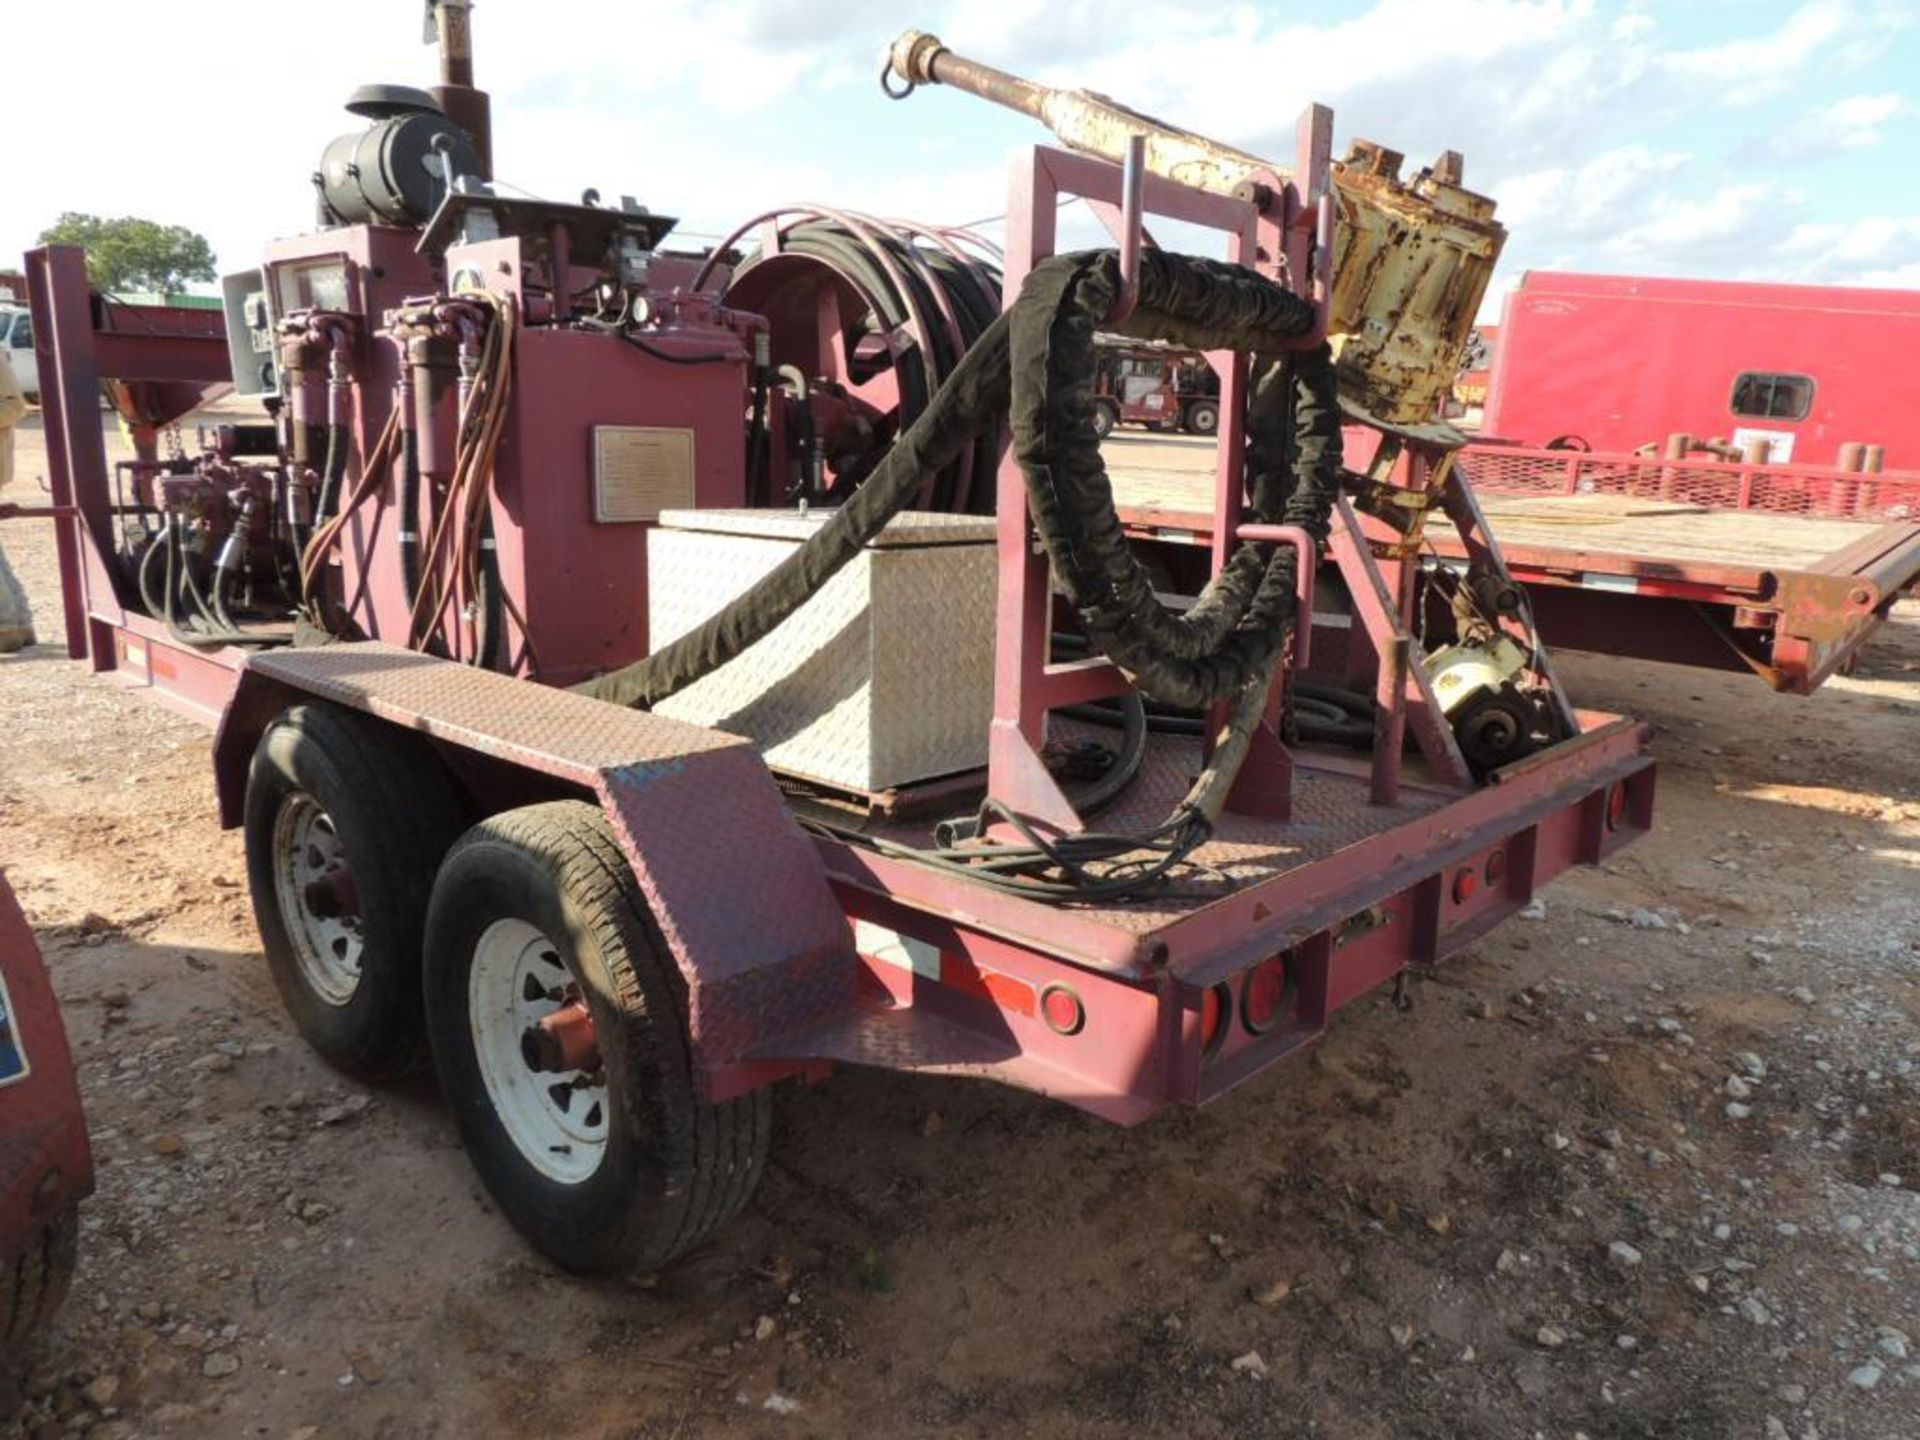 Power Swivel Trailer 2007 Ameri Trail Gooseneck Trailer 6 Ft. x 14 Ft. T/A, w/ King Oil Tools 3PS - Image 5 of 6